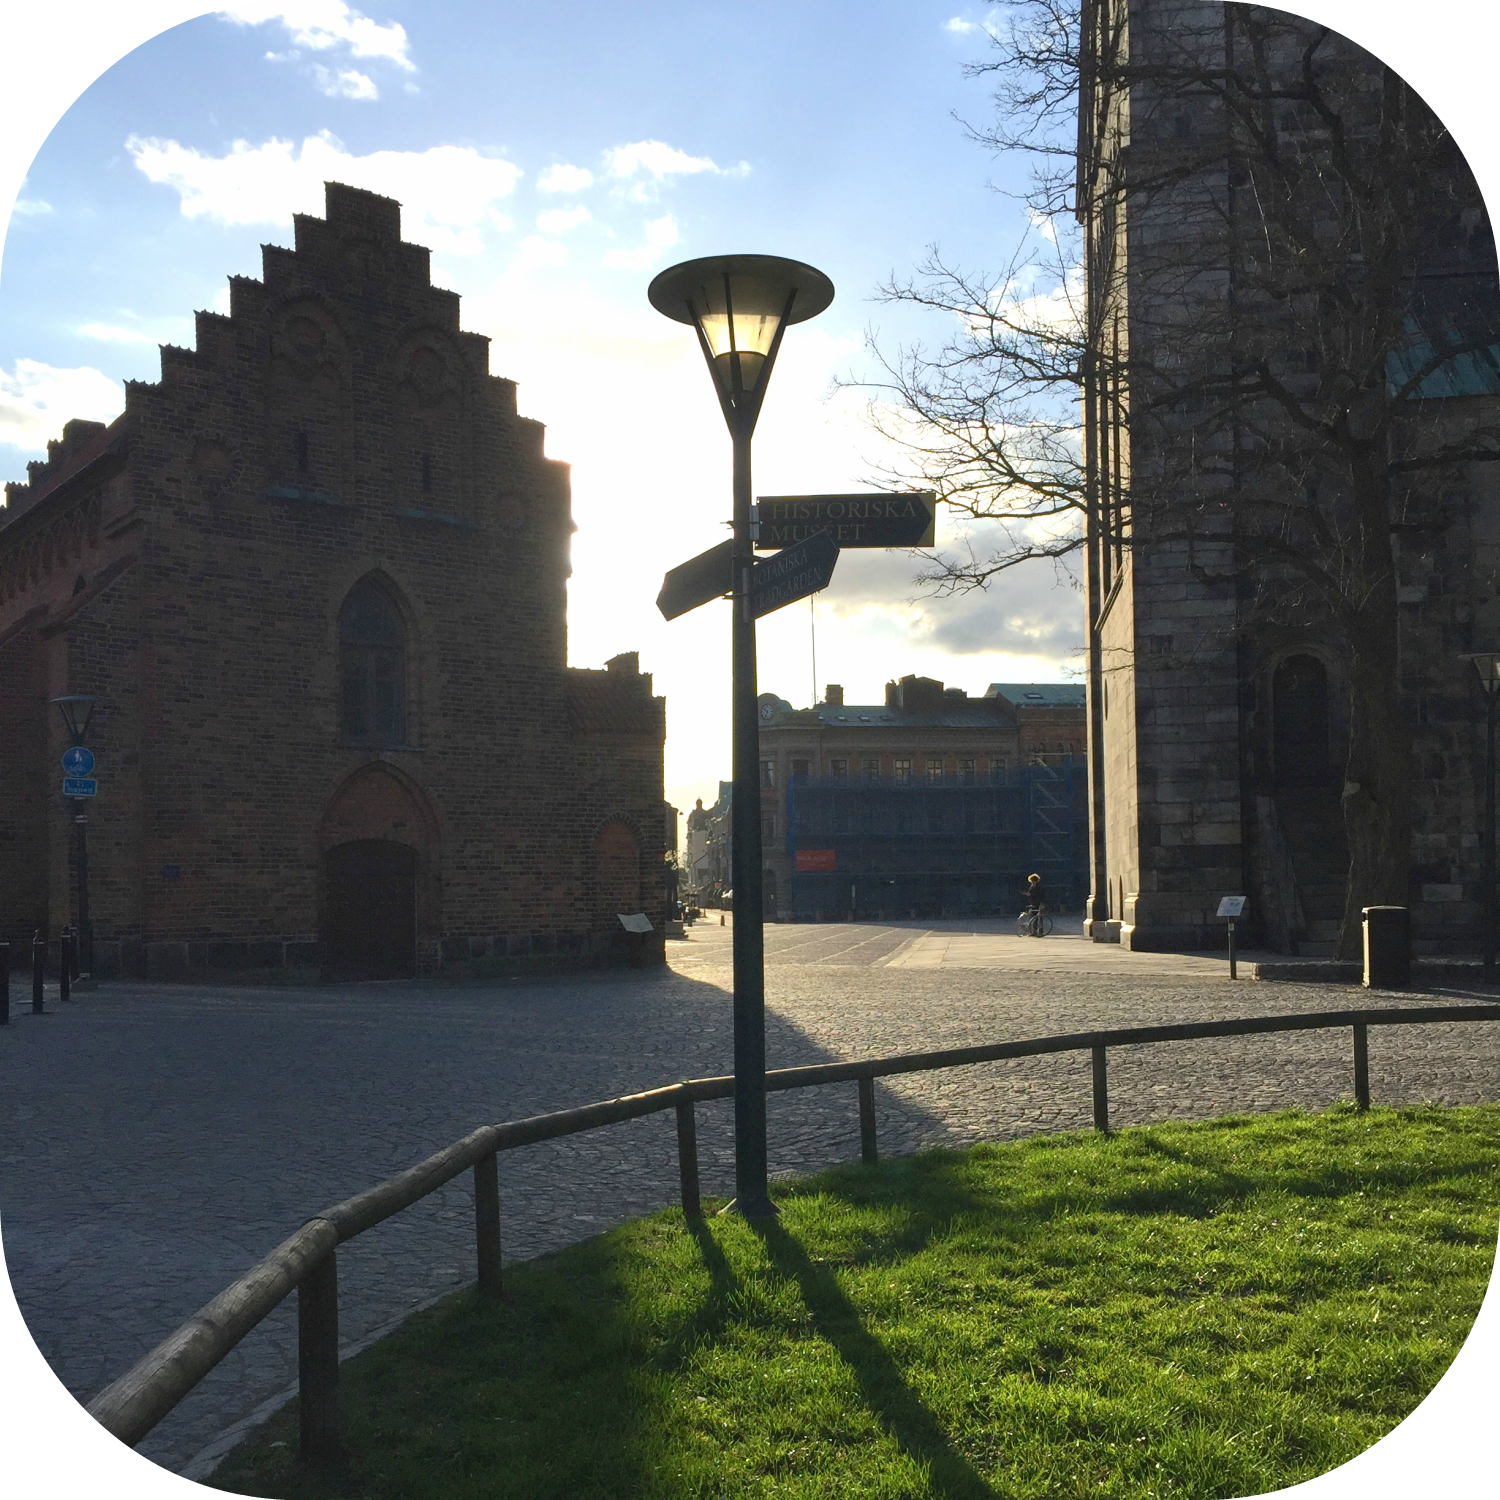 Lund Domkyrka rounded_corners.png